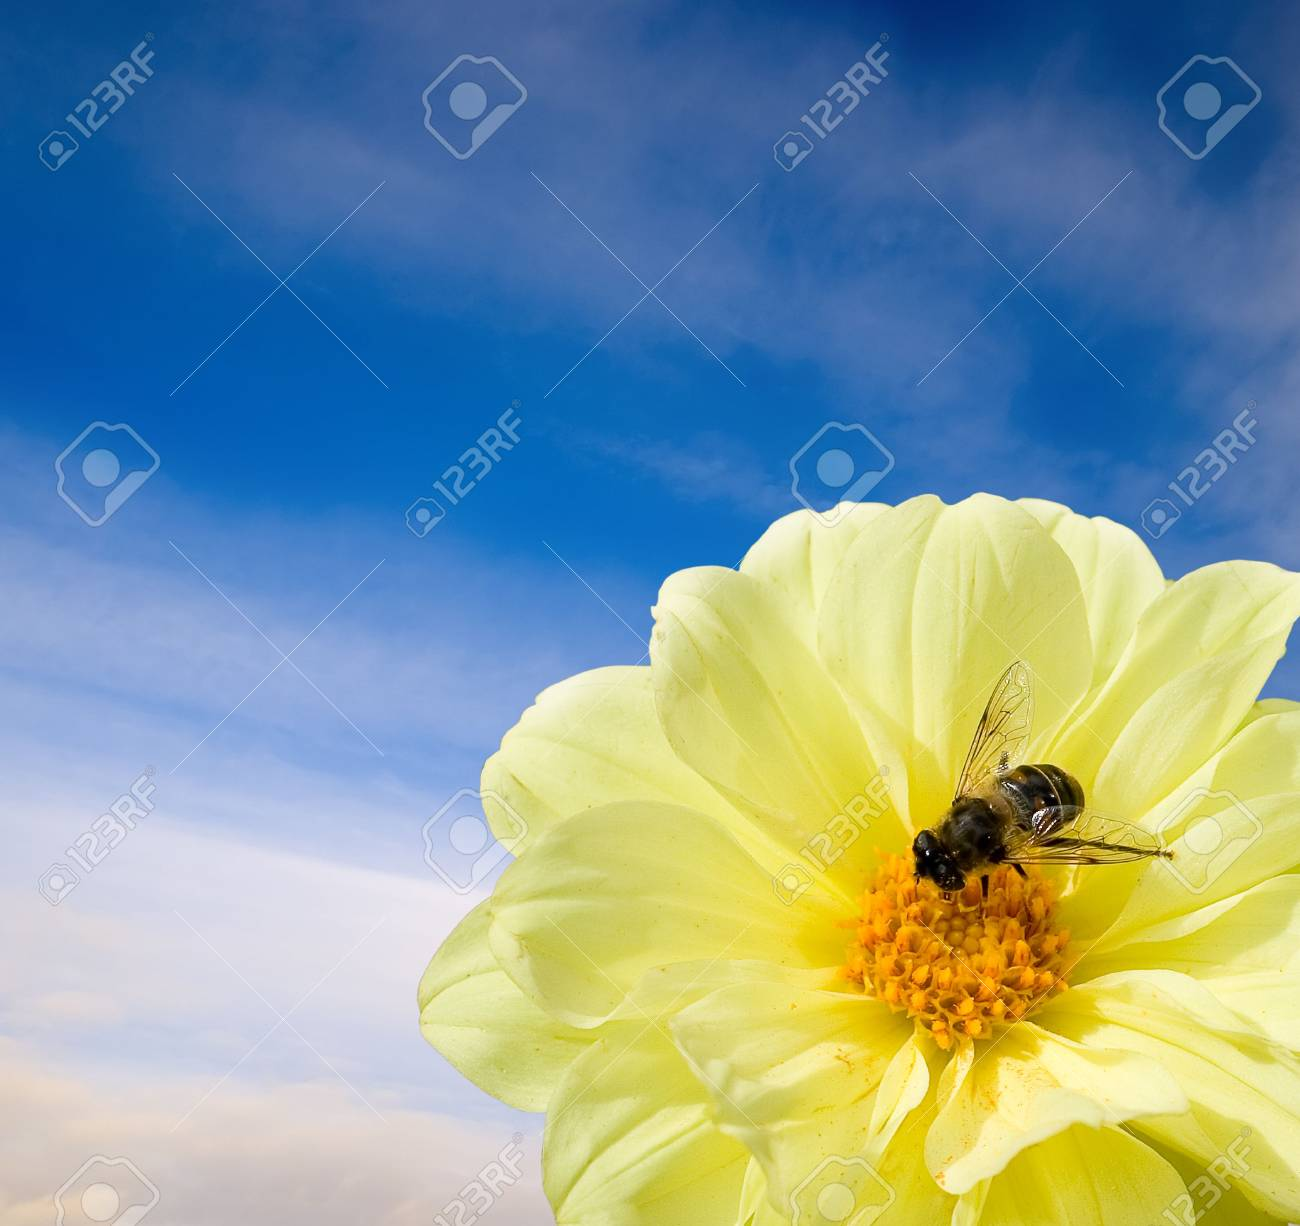 A flower and a bee. The concept of peace and tranquility. Stock Photo - 4094033